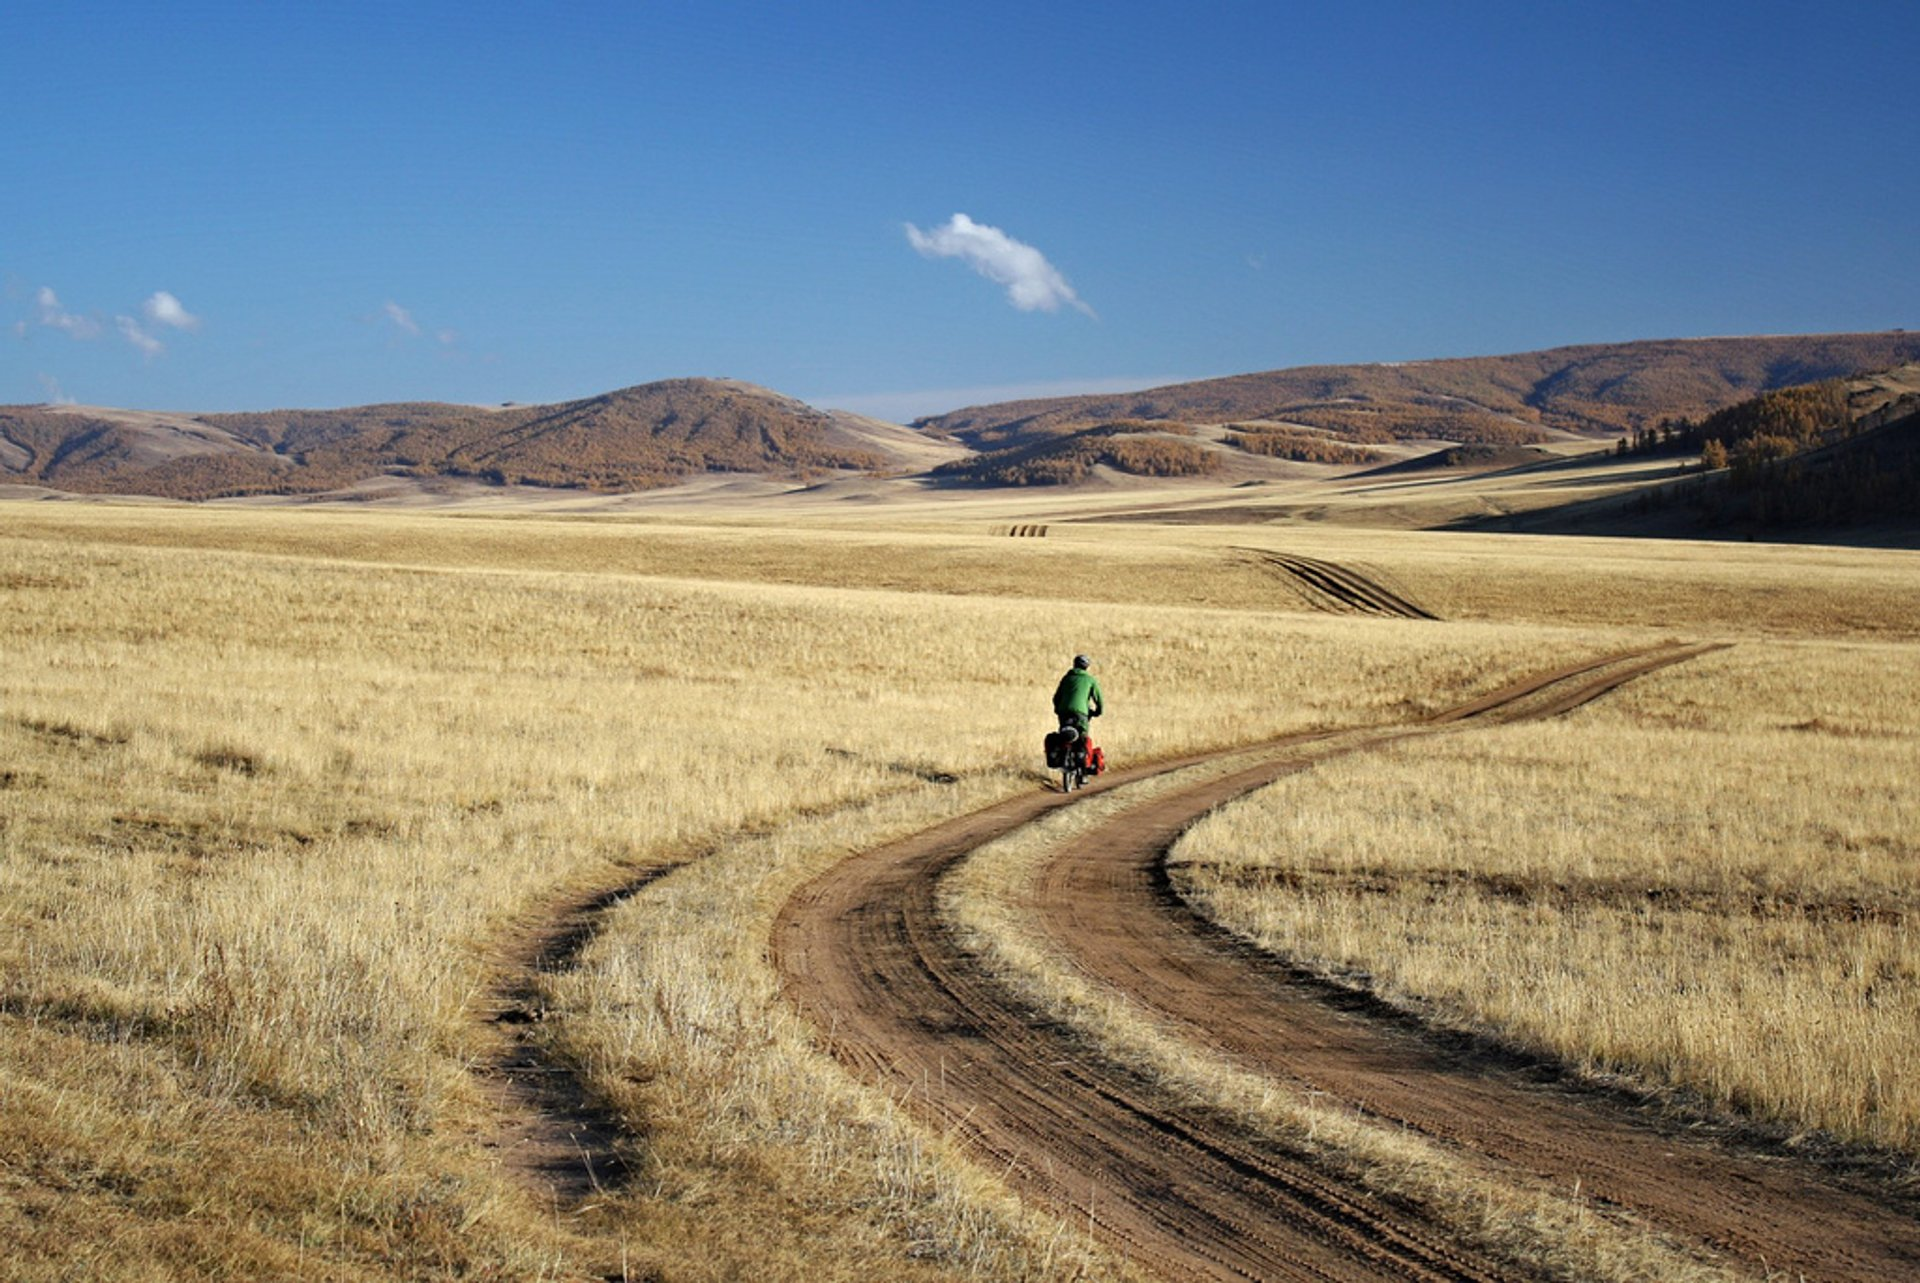 Cycling in Mongolia 2020 - Best Time